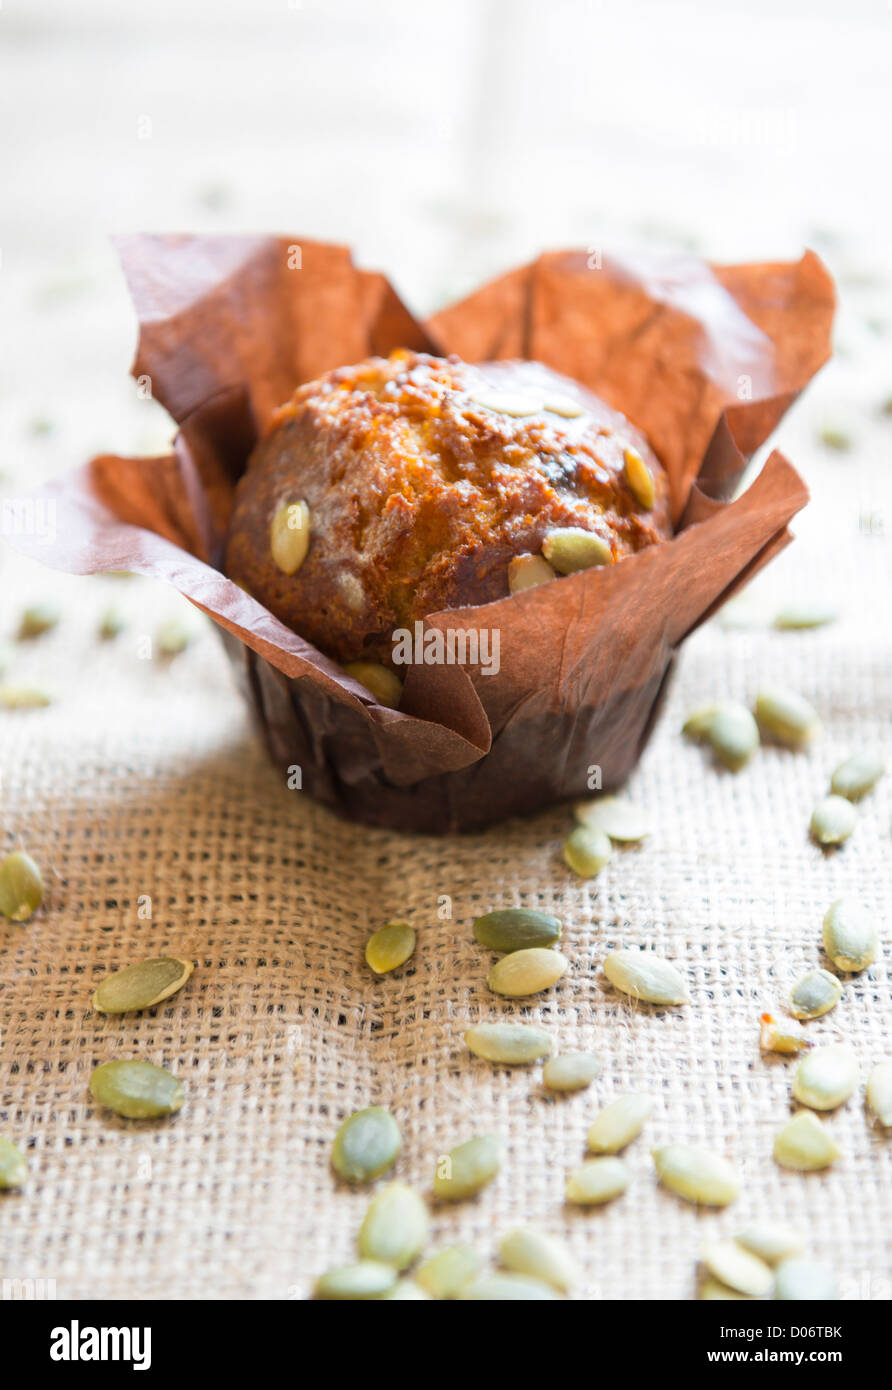 Pumpkin muffins and seeds. - Stock Image